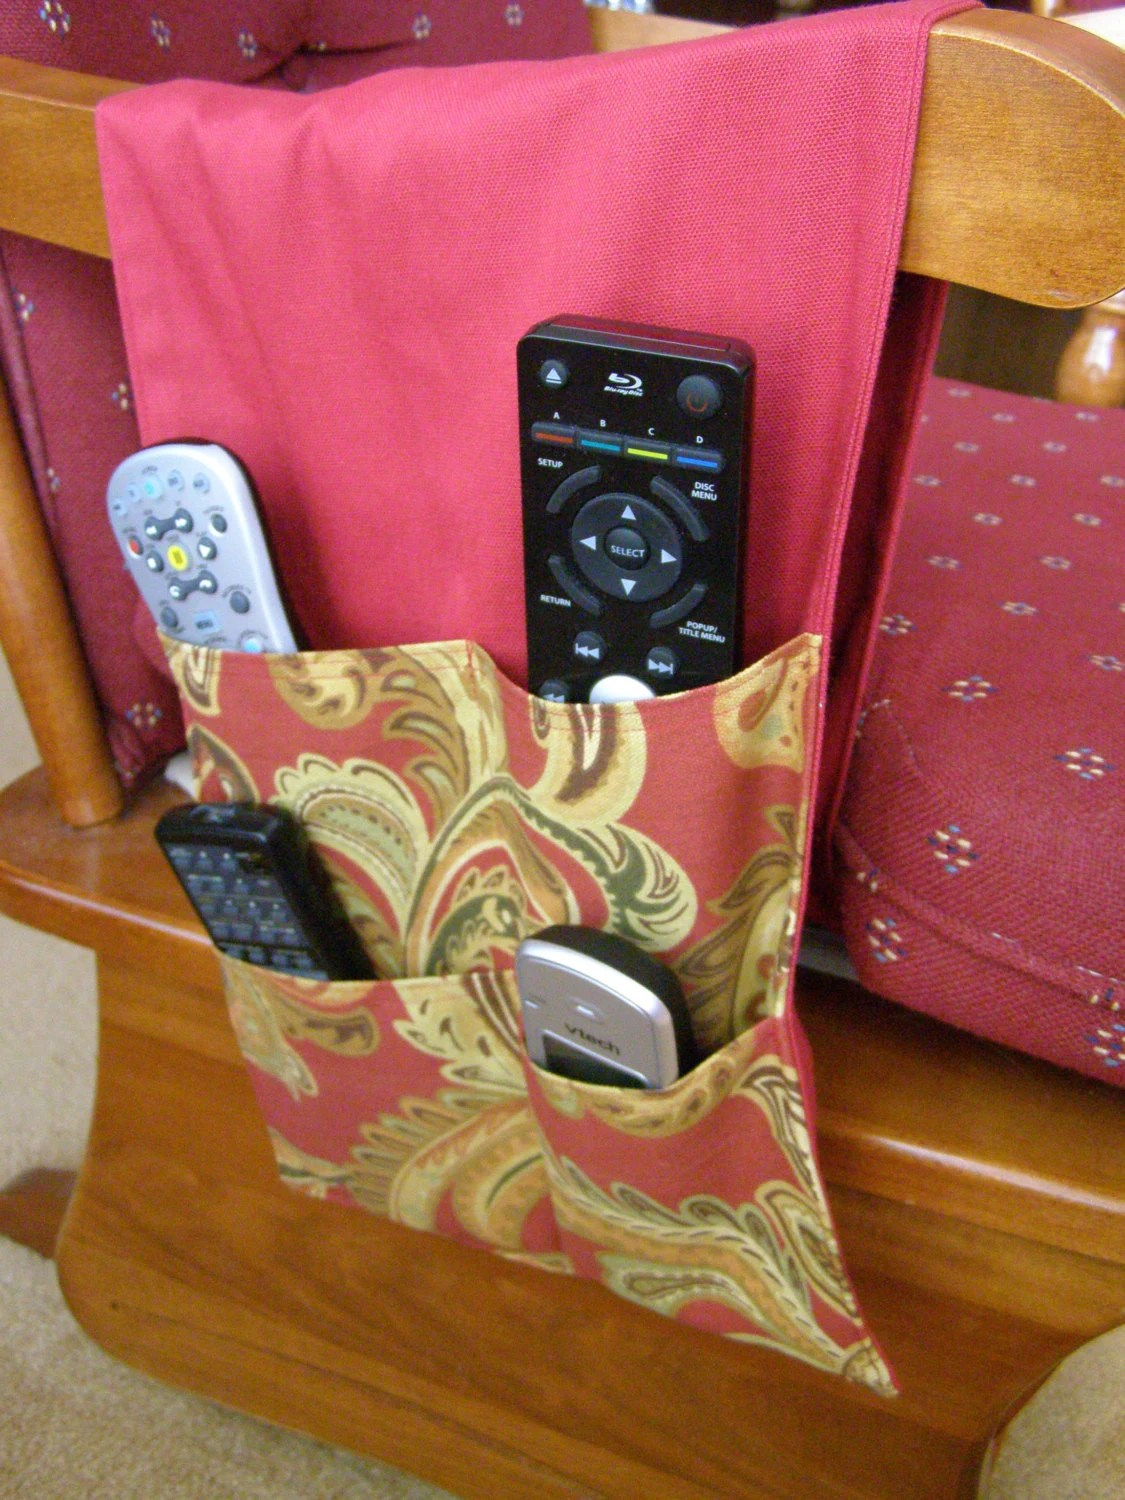 remote control holder for chair pattern how to make a bean bag out of old clothes tv caddy organizer 4 pocket burgundy paisley